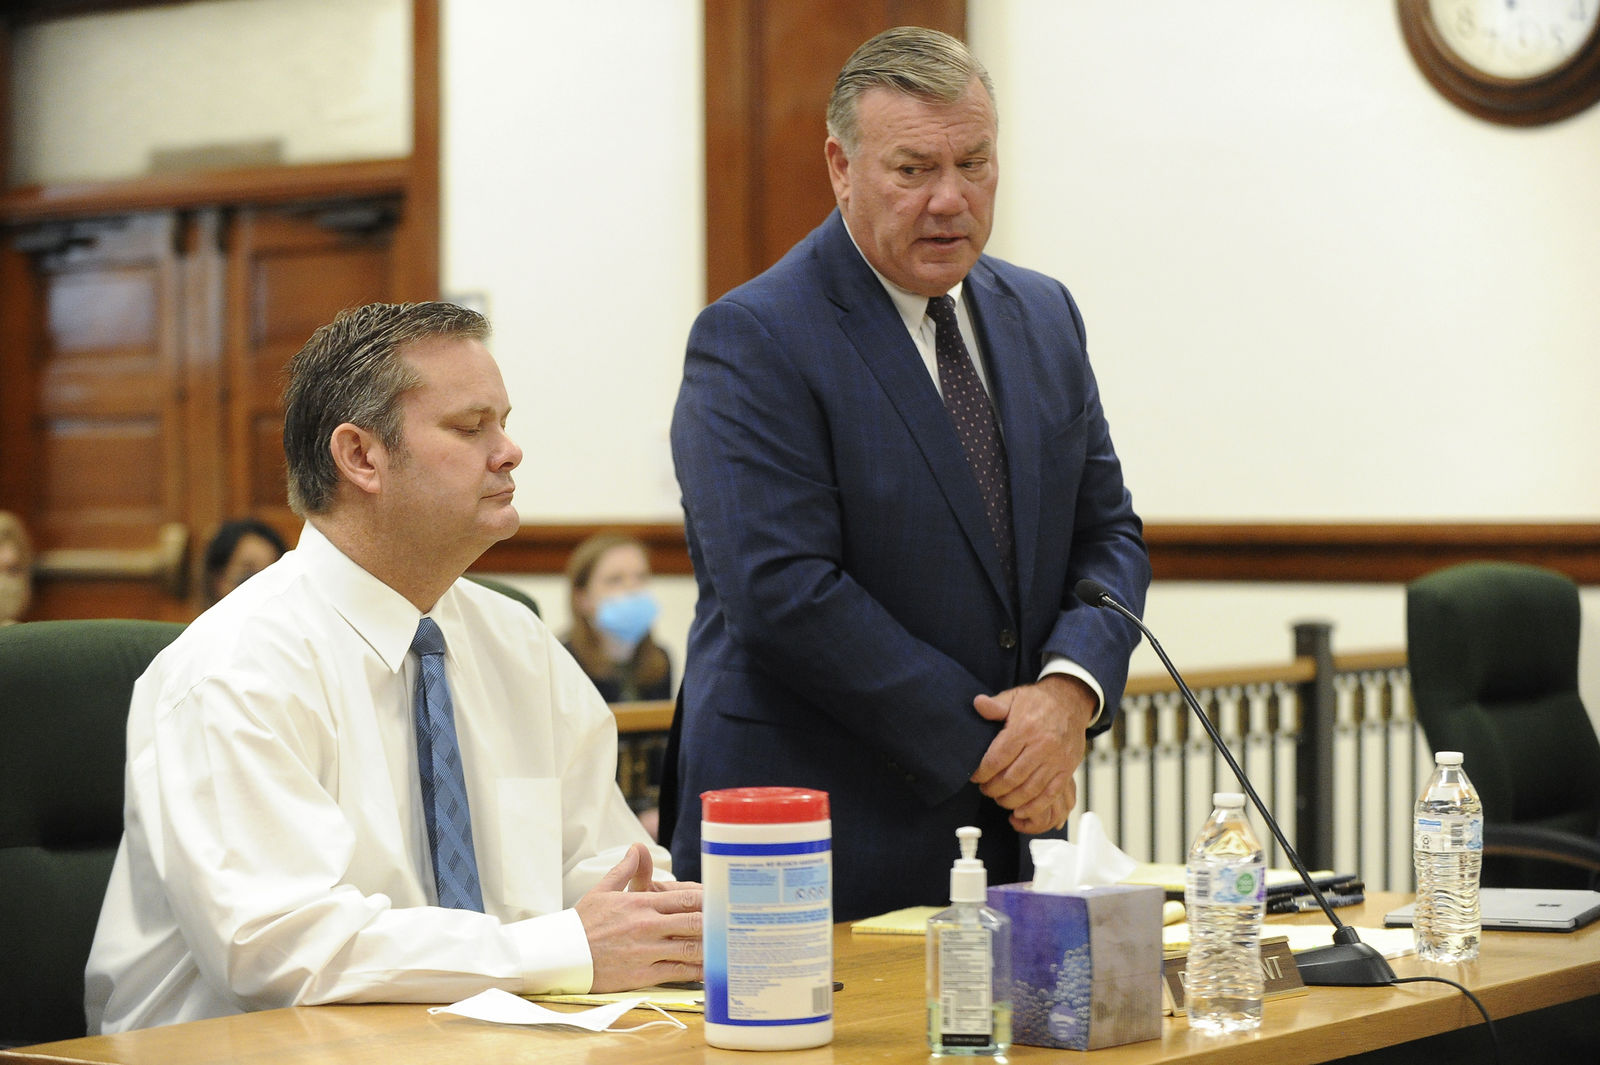 "Defense attorney John Prior, right, addresses Magistrate Judge Faren Eddins as to why he and Chad Daybell, left, are not wearing masks in court during a preliminary hearing in St. Anthony, Idaho, on Monday, August 3, 2020. The preliminary hearing will help a judge decide if the charges against Chad Daybell will move forward in state court. Daybell, 52, is charged with concealing evidence by destroying or hiding the bodies of 7-year-old Joshua ""JJ"" Vallow and 17-year-old Tylee Ryan at his eastern Idaho home. (John Roark/The Idaho Post-Register via AP, Pool)"